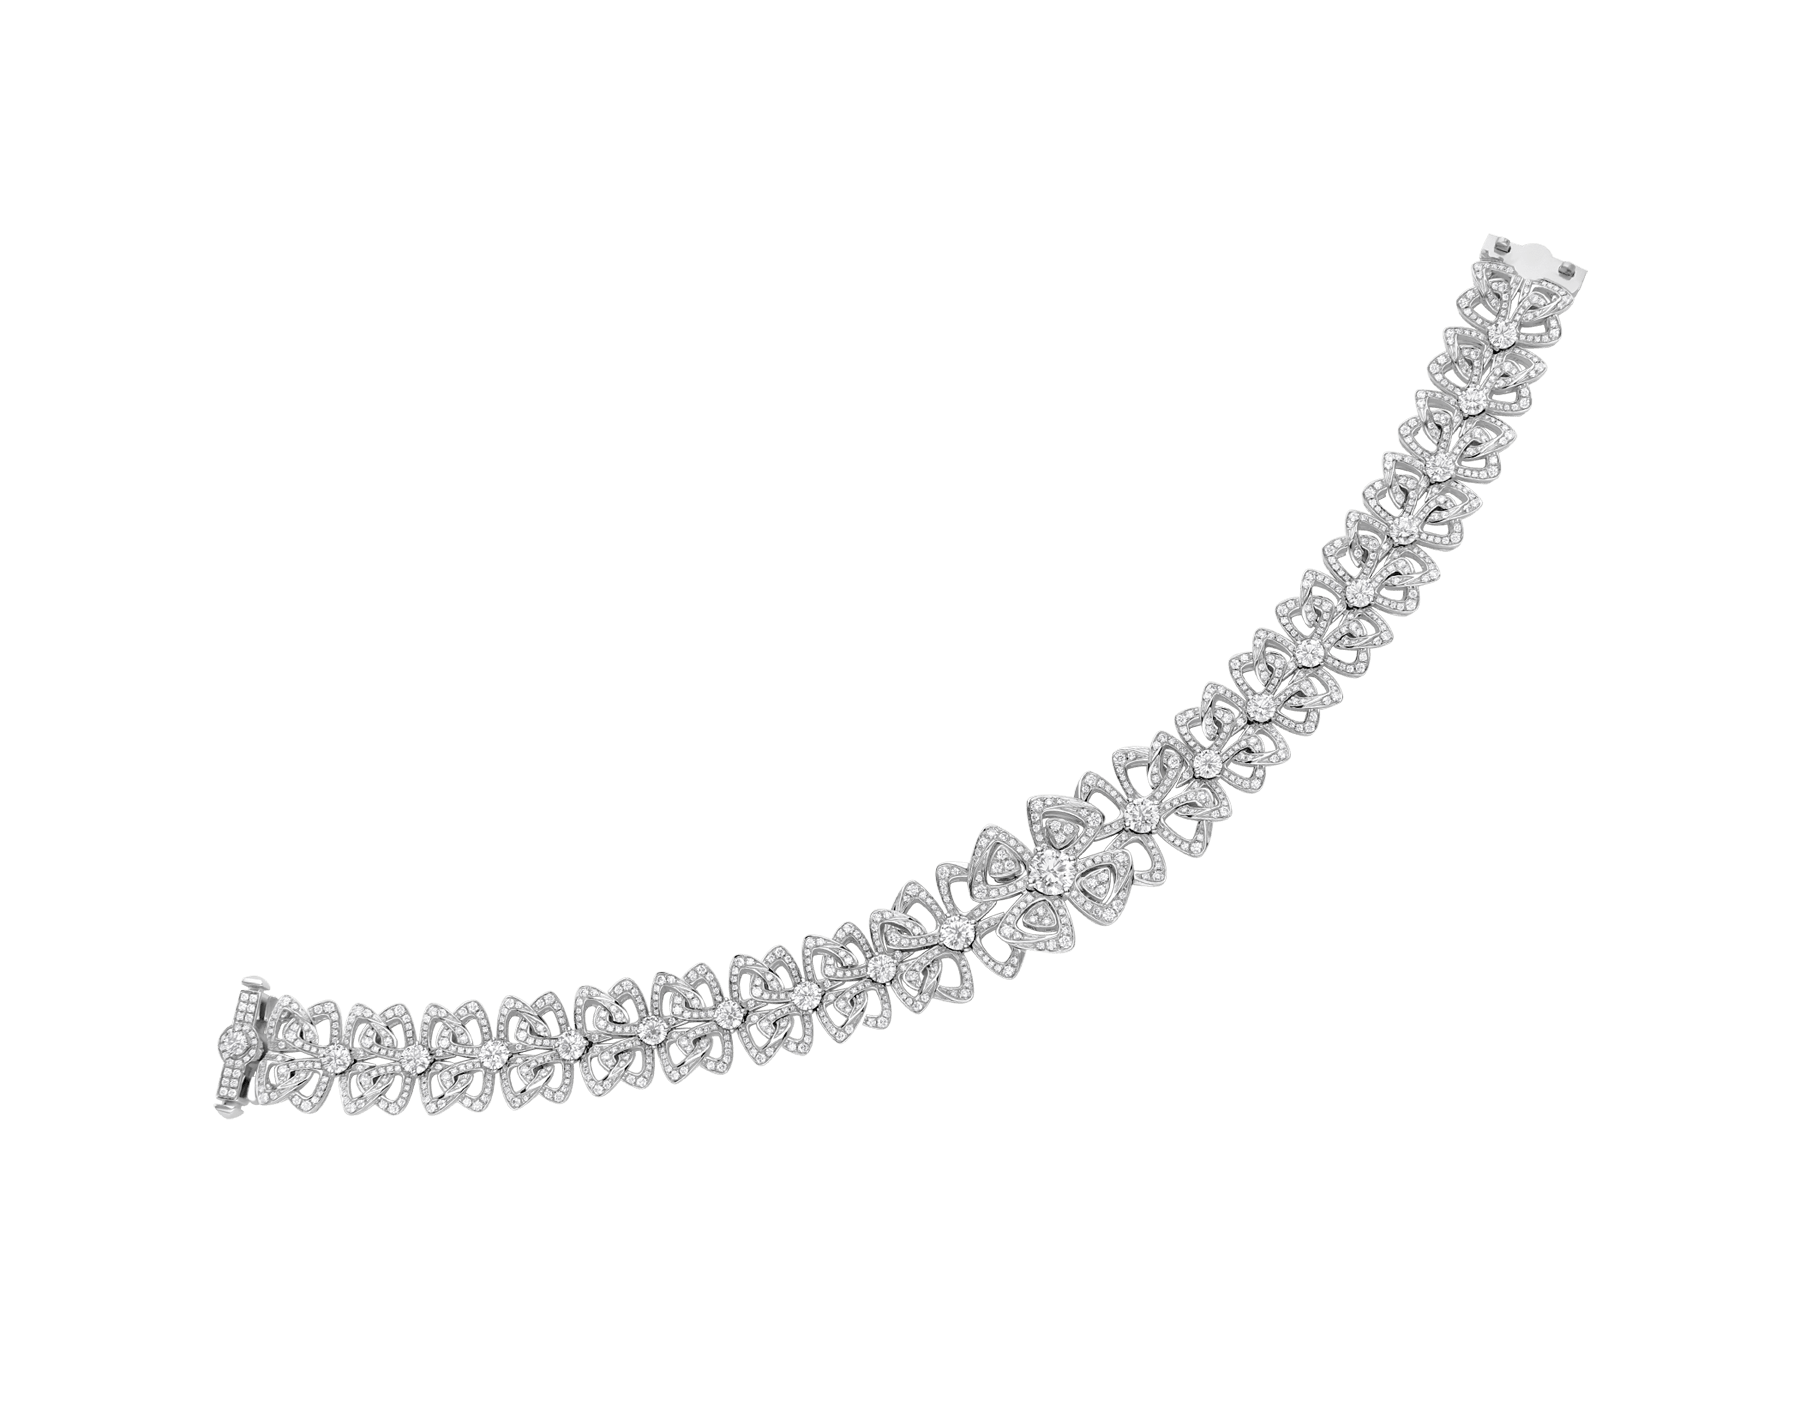 Fiorever 18 kt white gold bracelet set with 20 round brilliant-cut diamonds (2.63 ct) and pavé diamonds (1.85 ct) BR858758 image 2